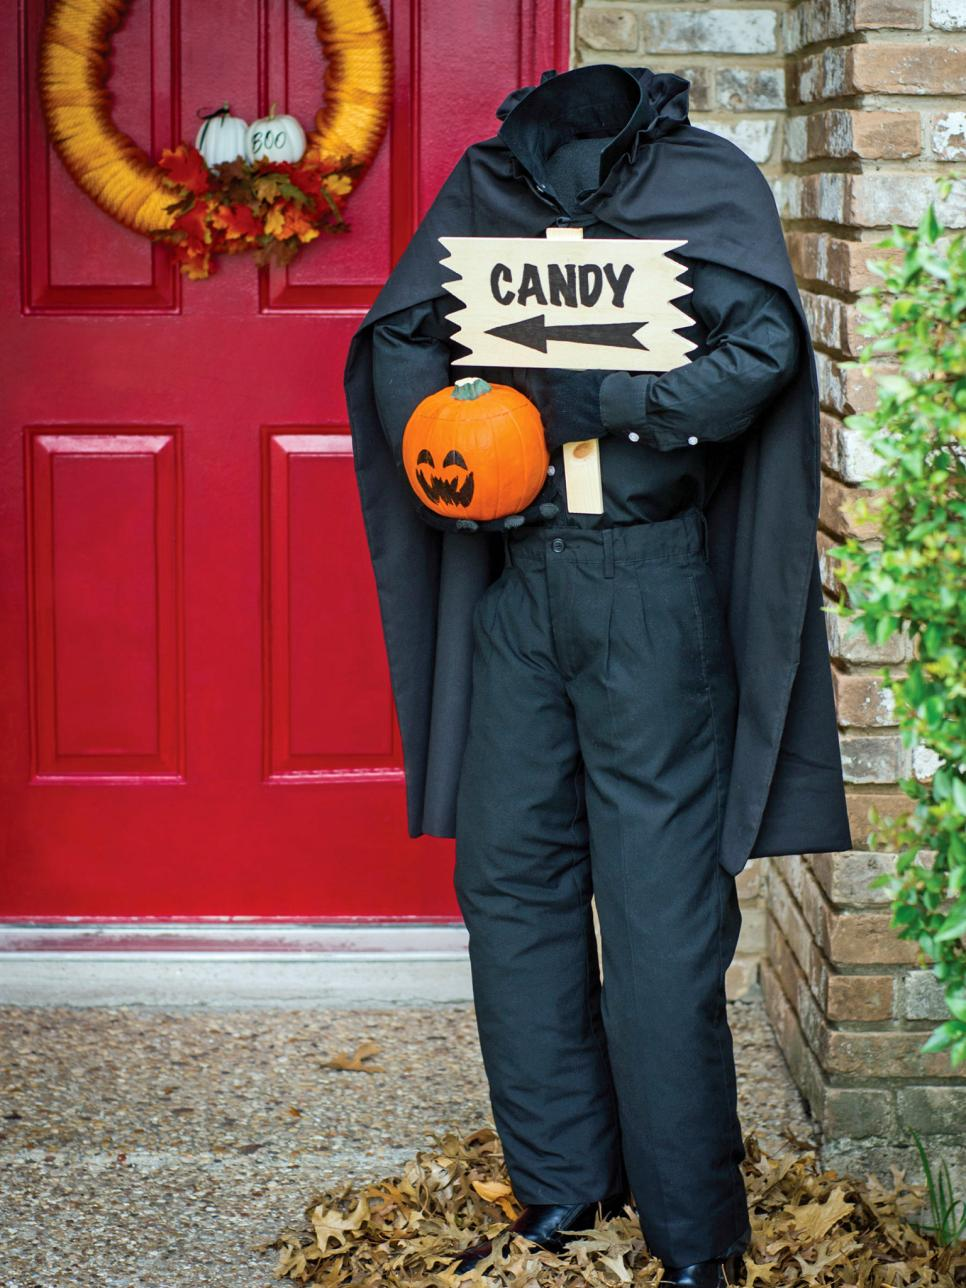 60 diy halloween decorations decorating ideas hgtv - 2016 Halloween Decor